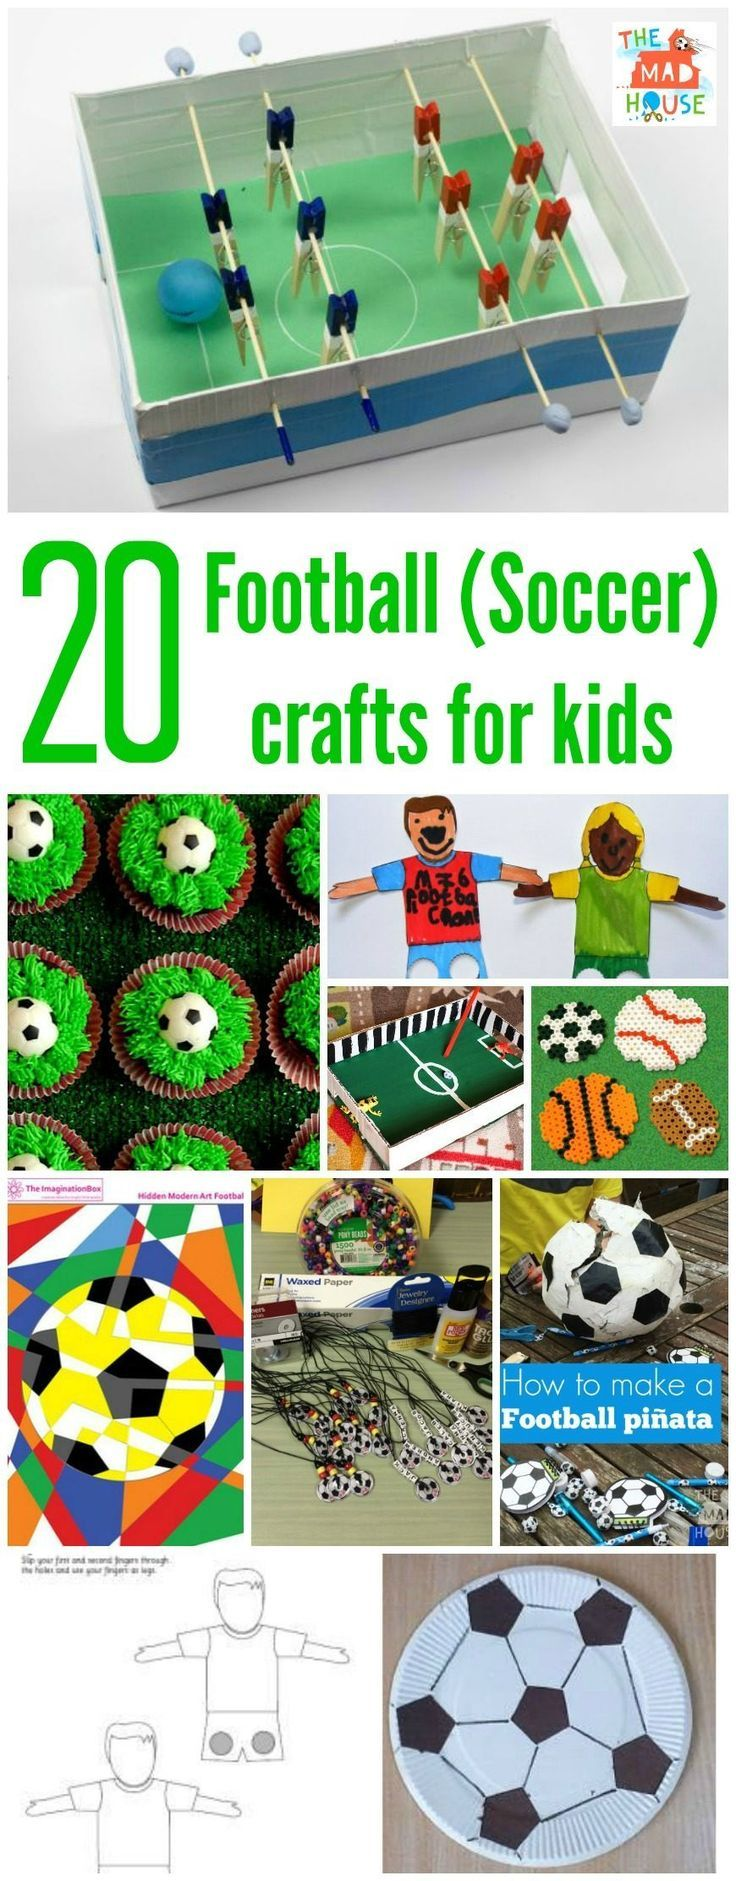 Over 20 fab football crafts or soccer crafts for kids.  Celebrate the beautiful game with these fun and easy to prepare crafts and activities for children.  Lots of crafts, activities and education games all with a soccer or football theme.  Get your DIY